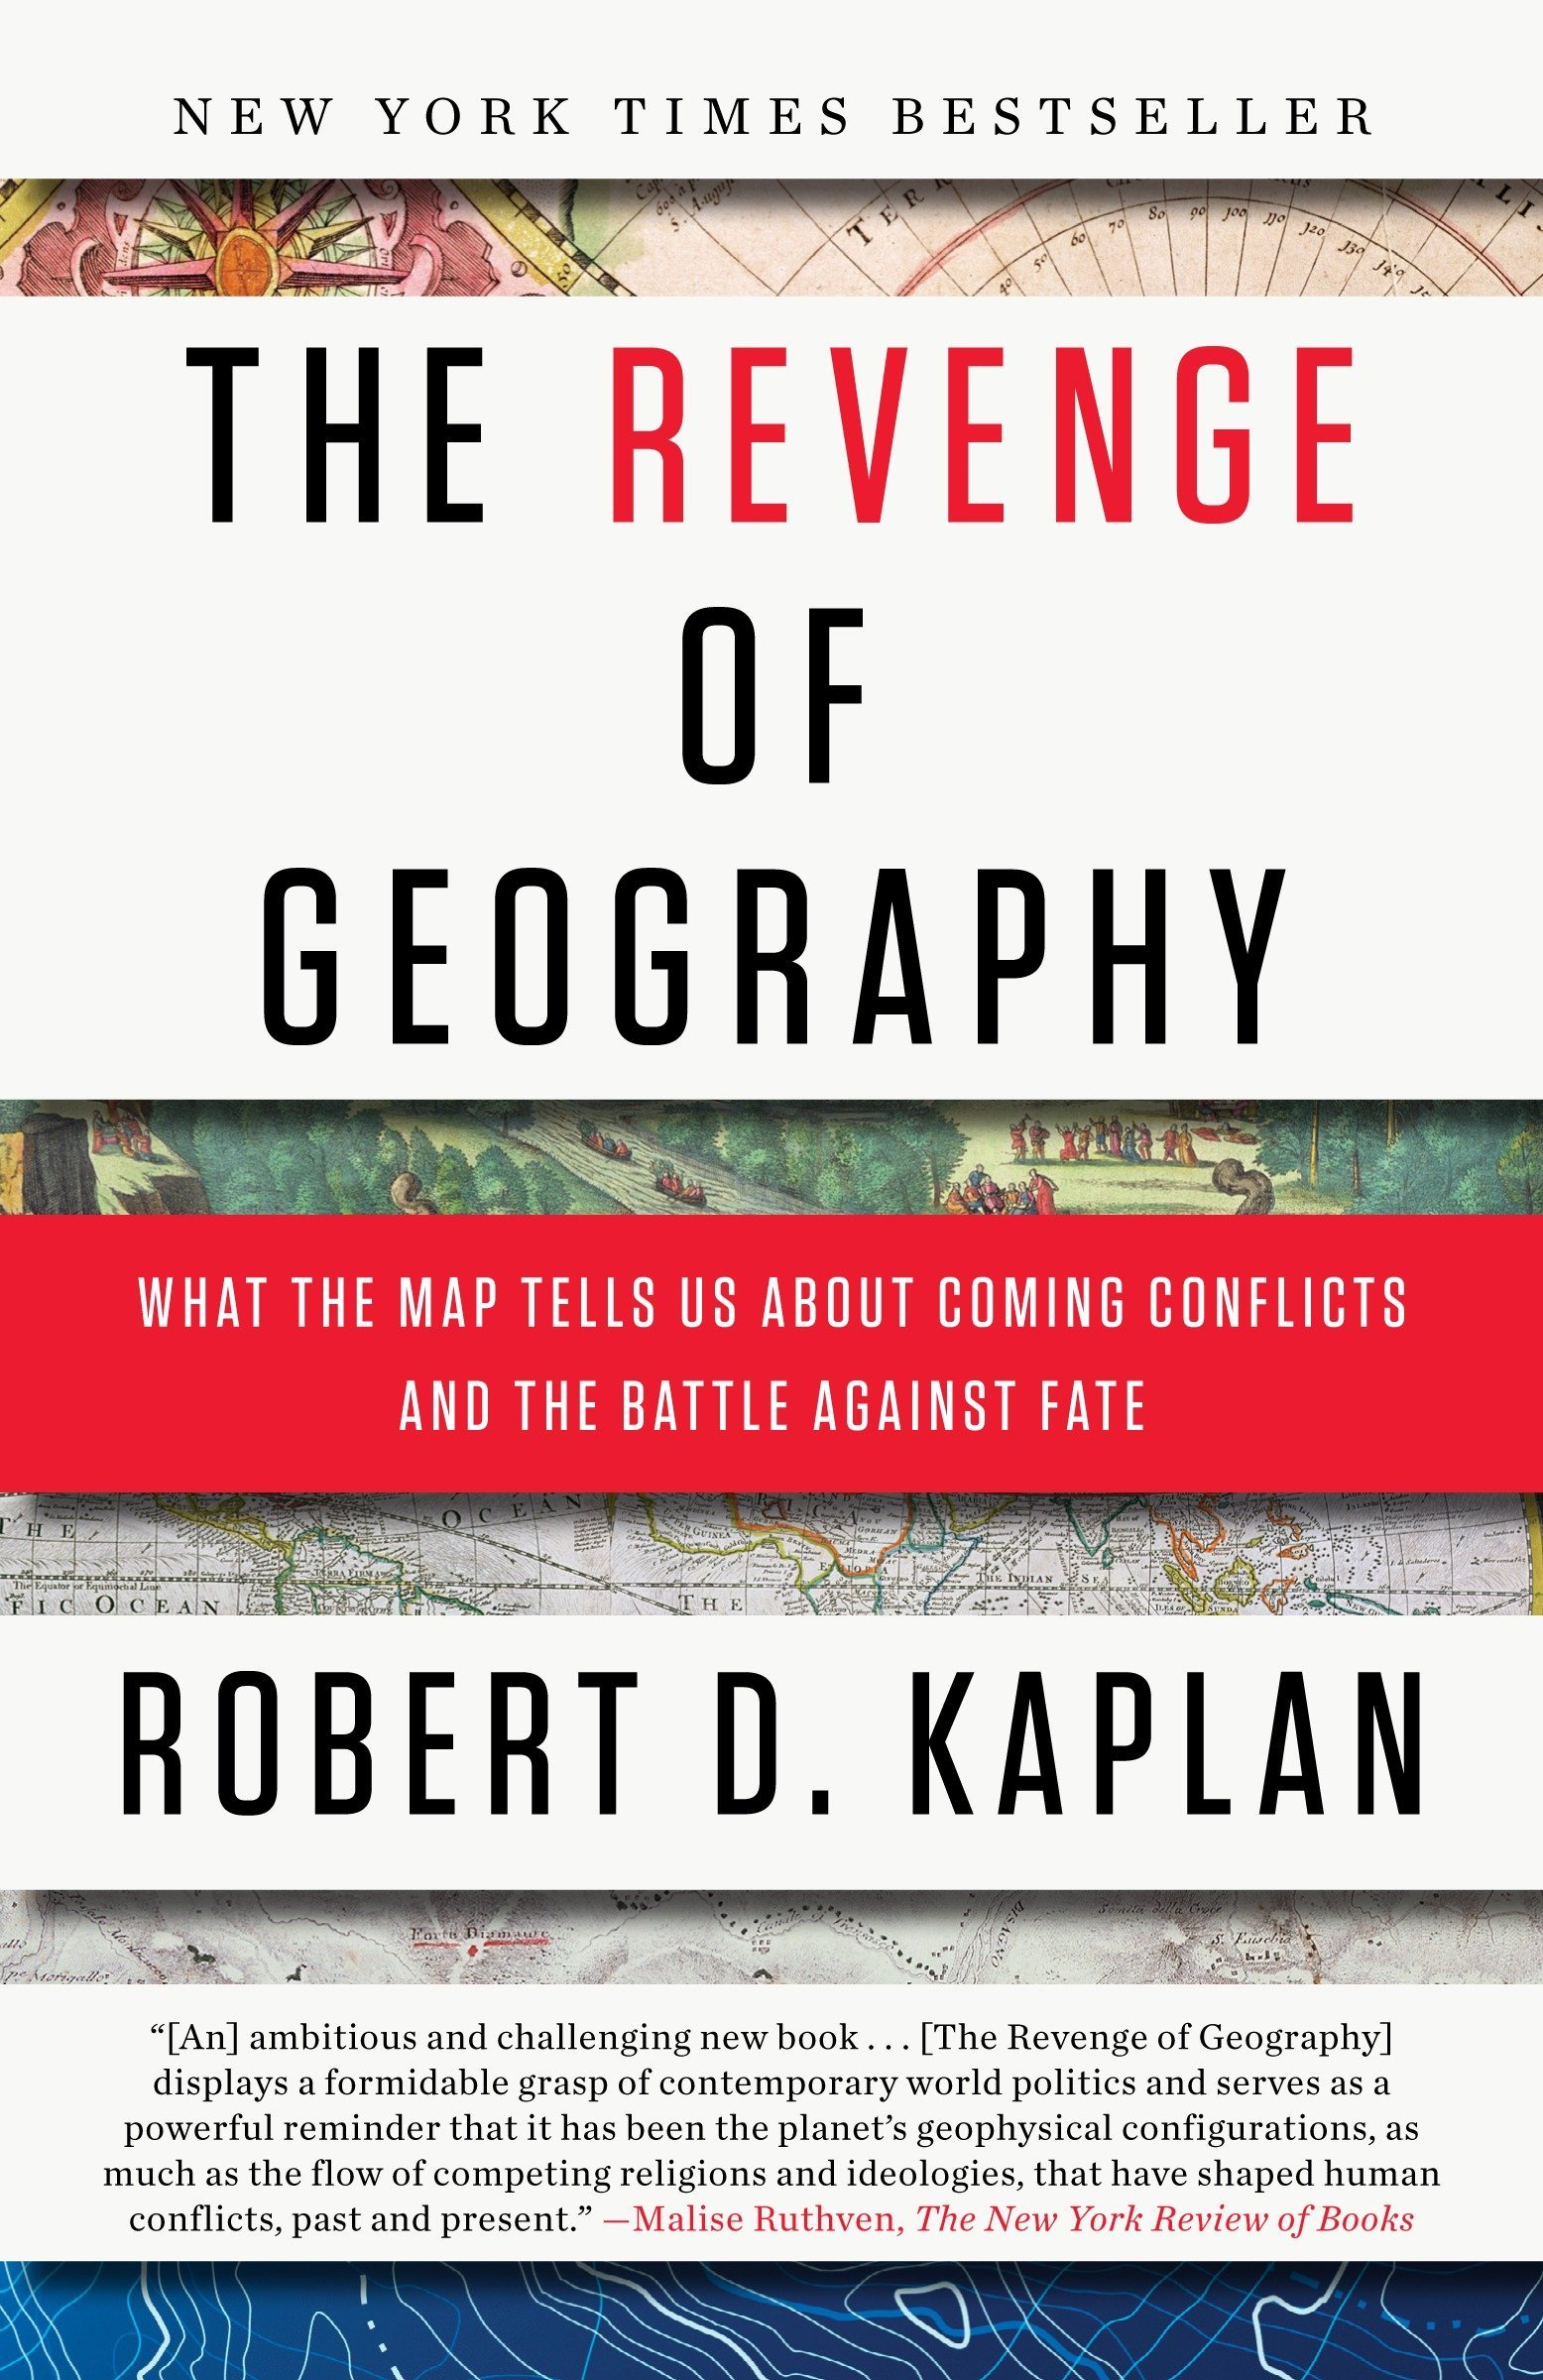 The cover for the Revenge of Geography